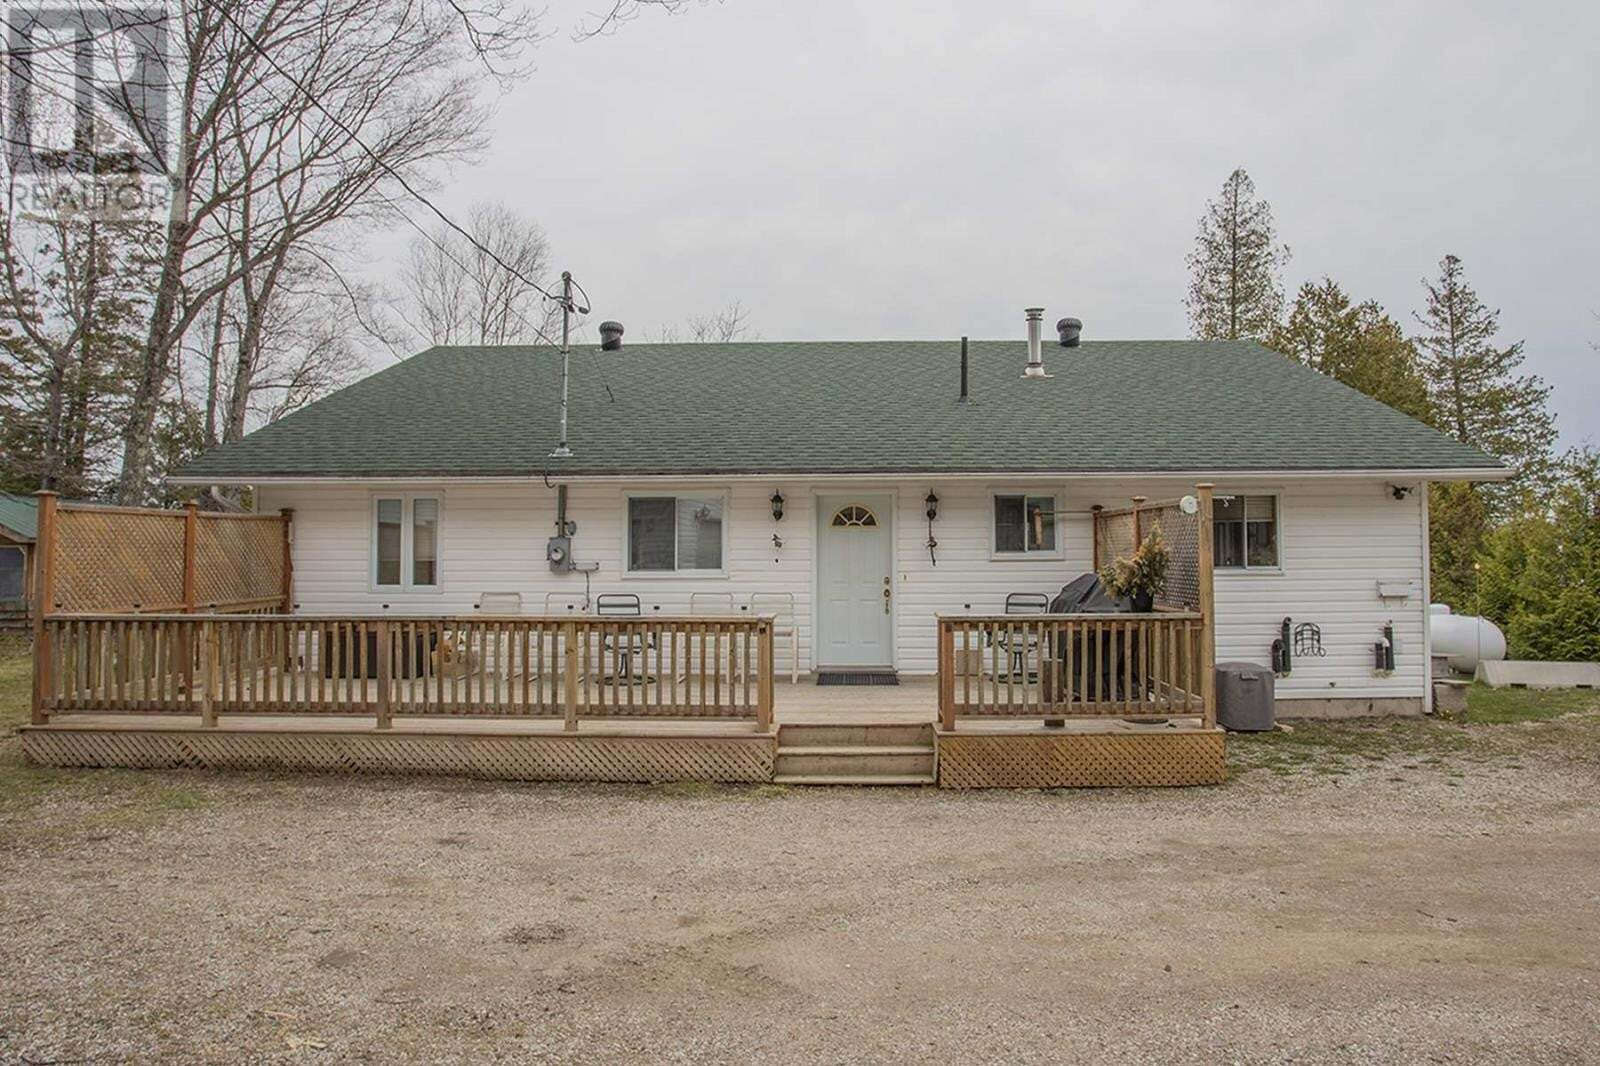 House for sale at 31 James St Goulais River Ontario - MLS: SM127930